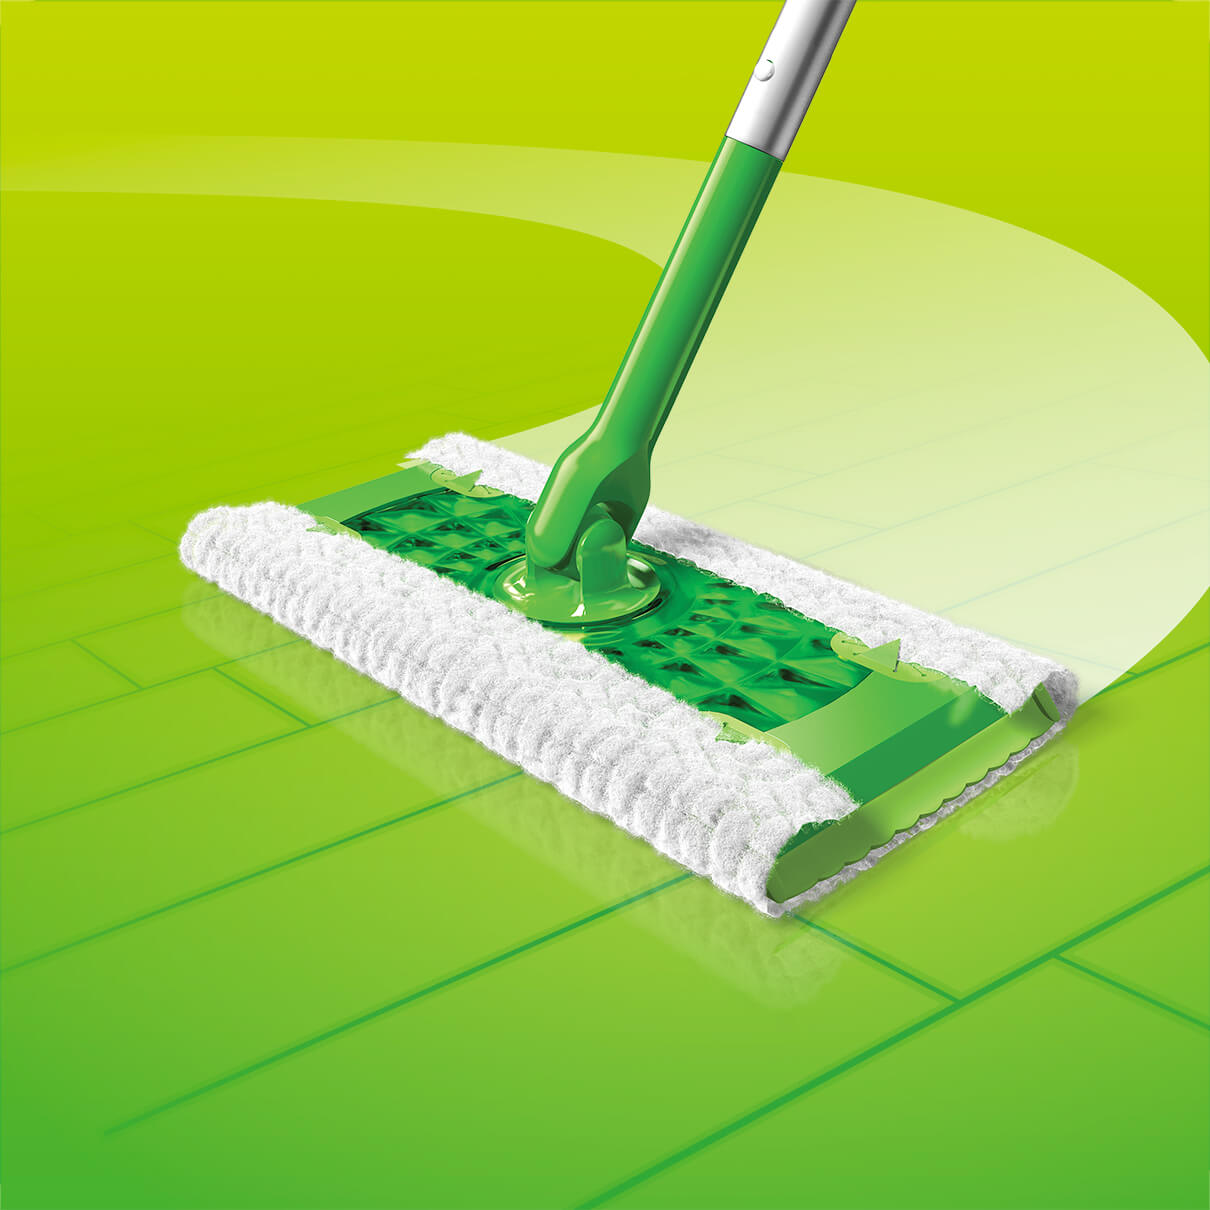 Swiffer Sweeper Dry Refill Device In Action